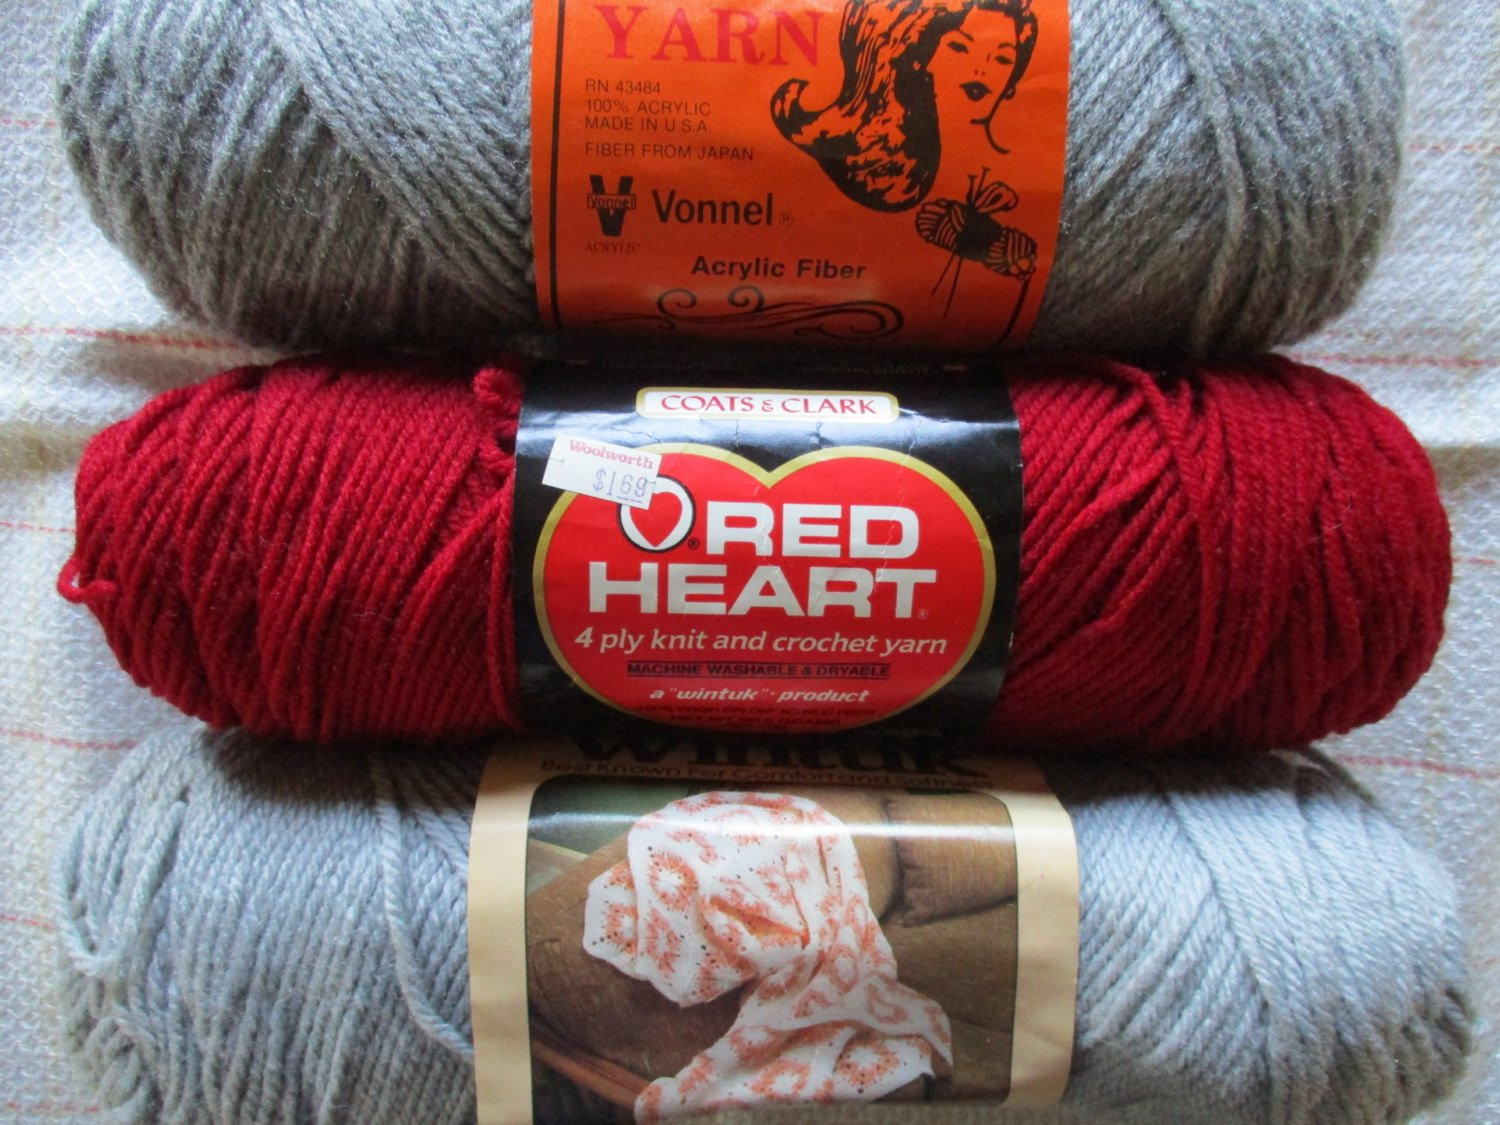 Yarn Weight 3 Awesome Vintage Yarn Worsted Weight Acrylic 3 New Skeins Grey by Of Fresh 45 Photos Yarn Weight 3